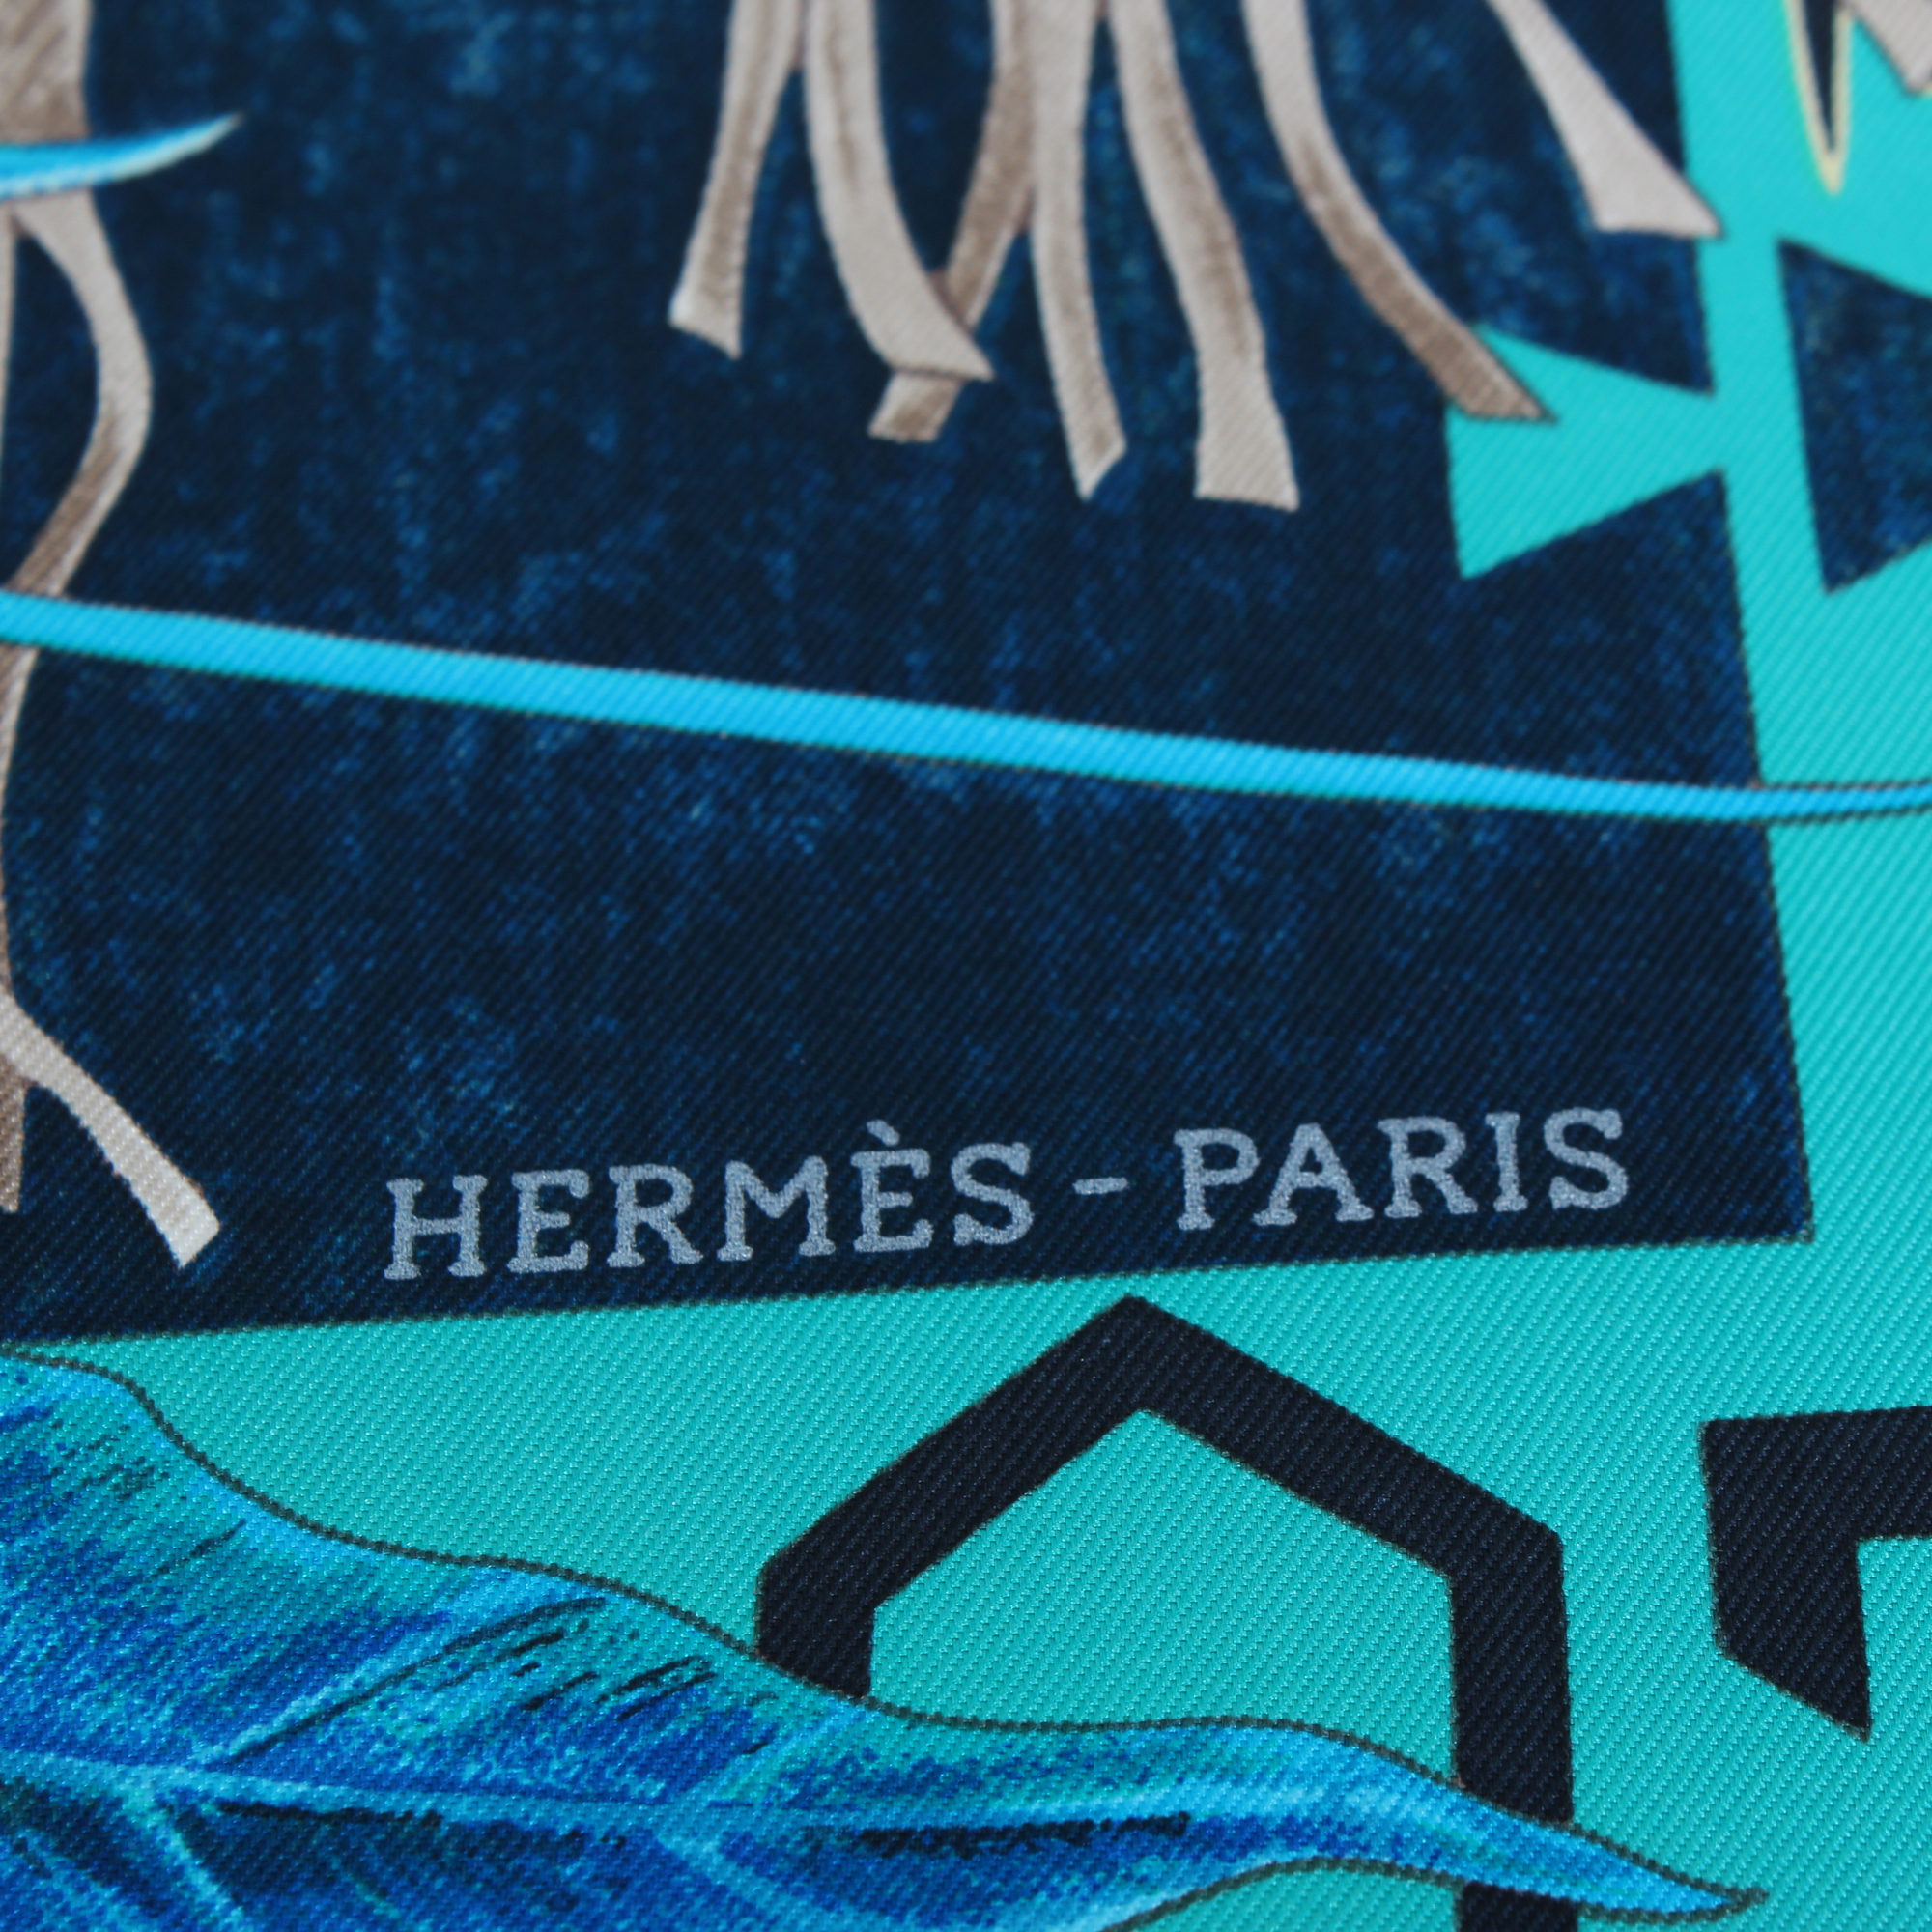 Image of the brand of hermes carre wa ko ni